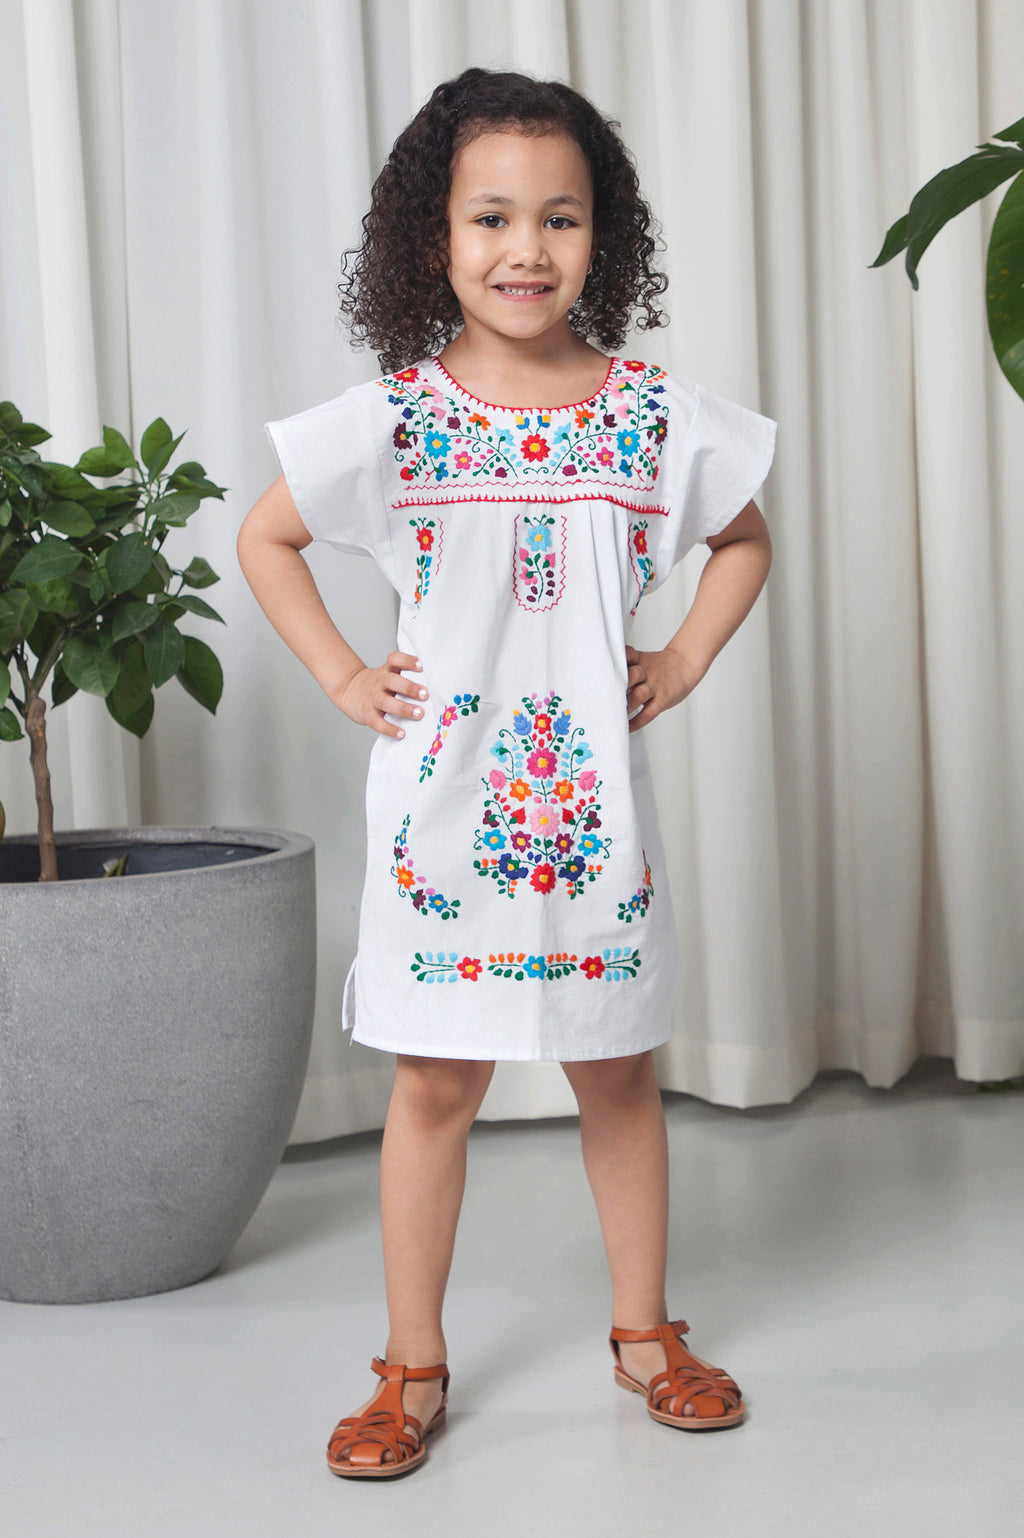 THE GIRL MEXICAN DRESS